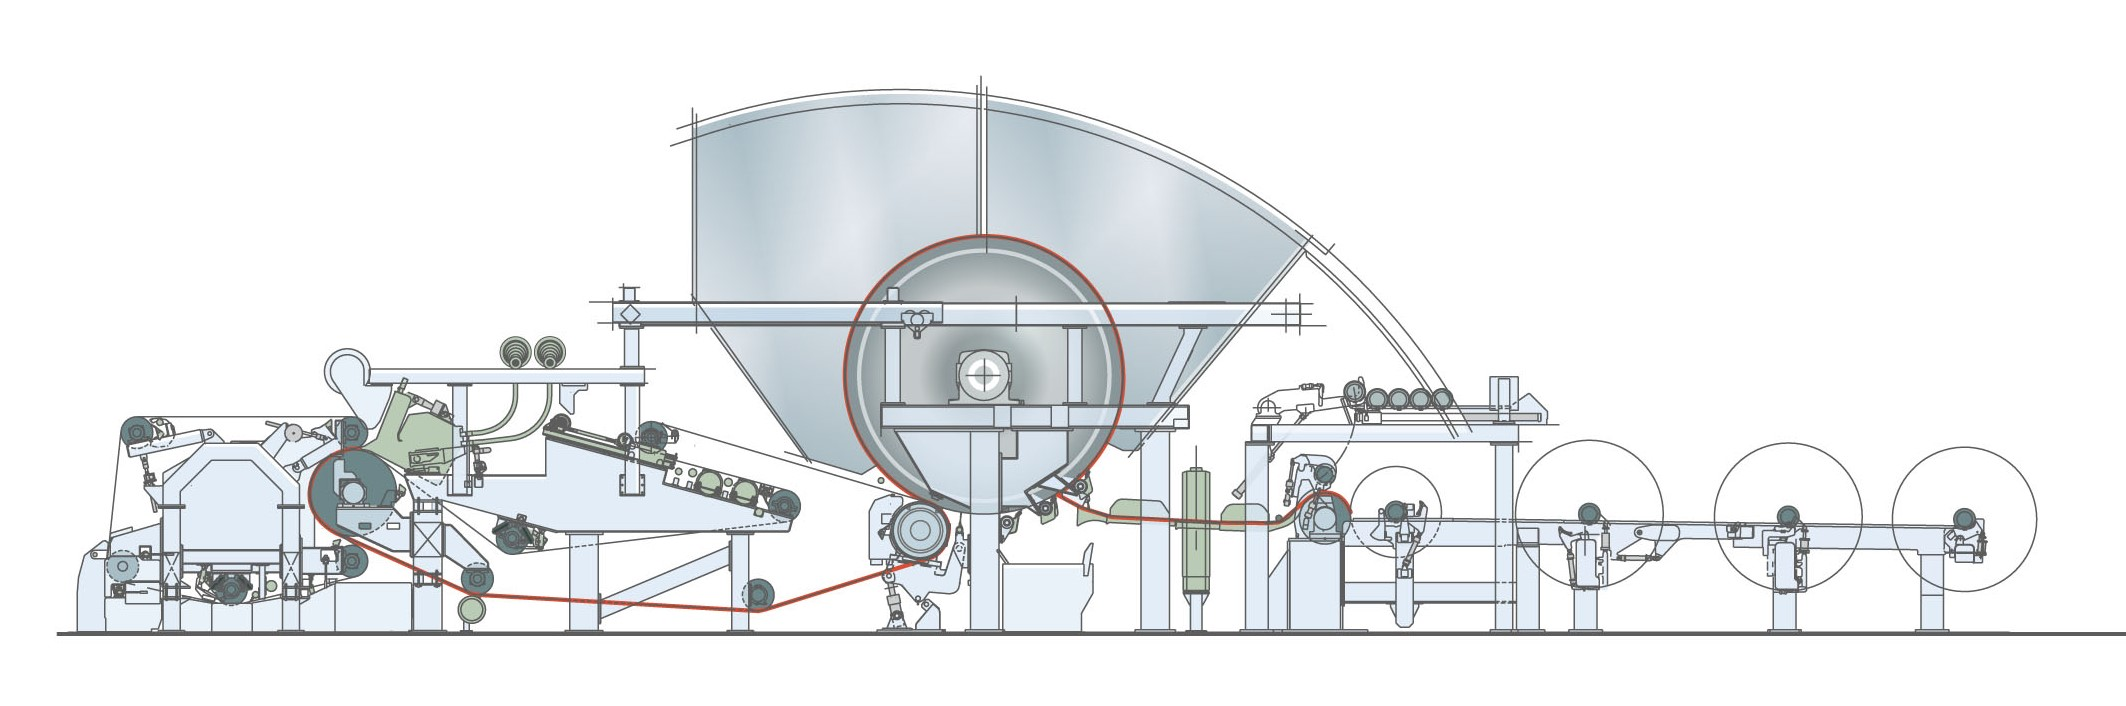 Crescent Former, or Conventional, Tissue Machine Technology